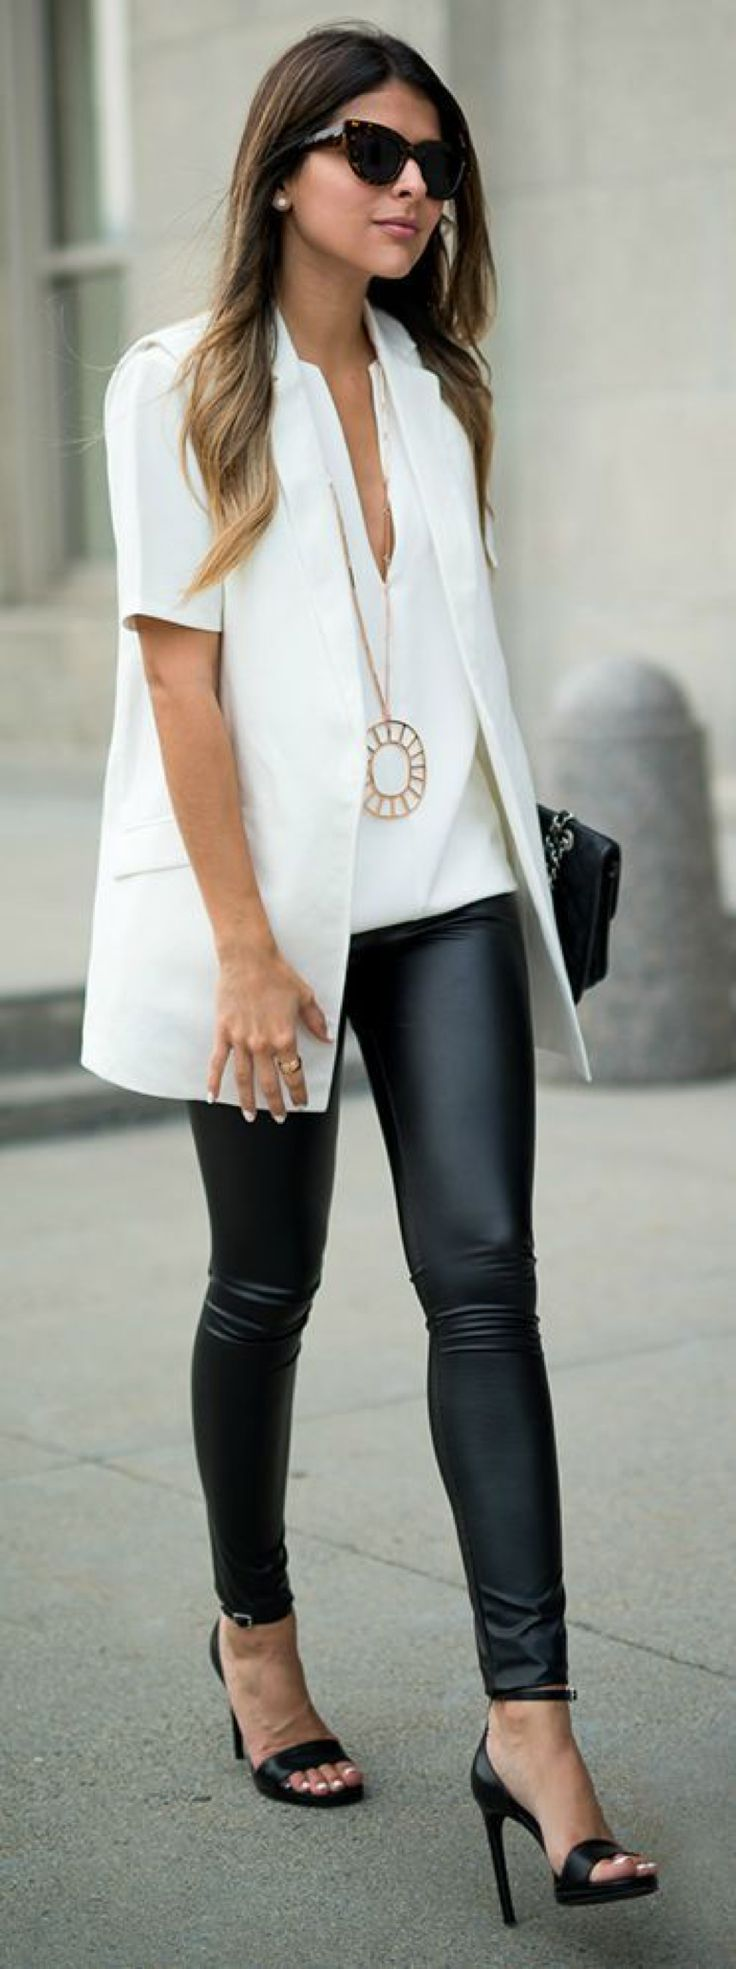 206 best images about SEXY IN LEGGINGS on Pinterest